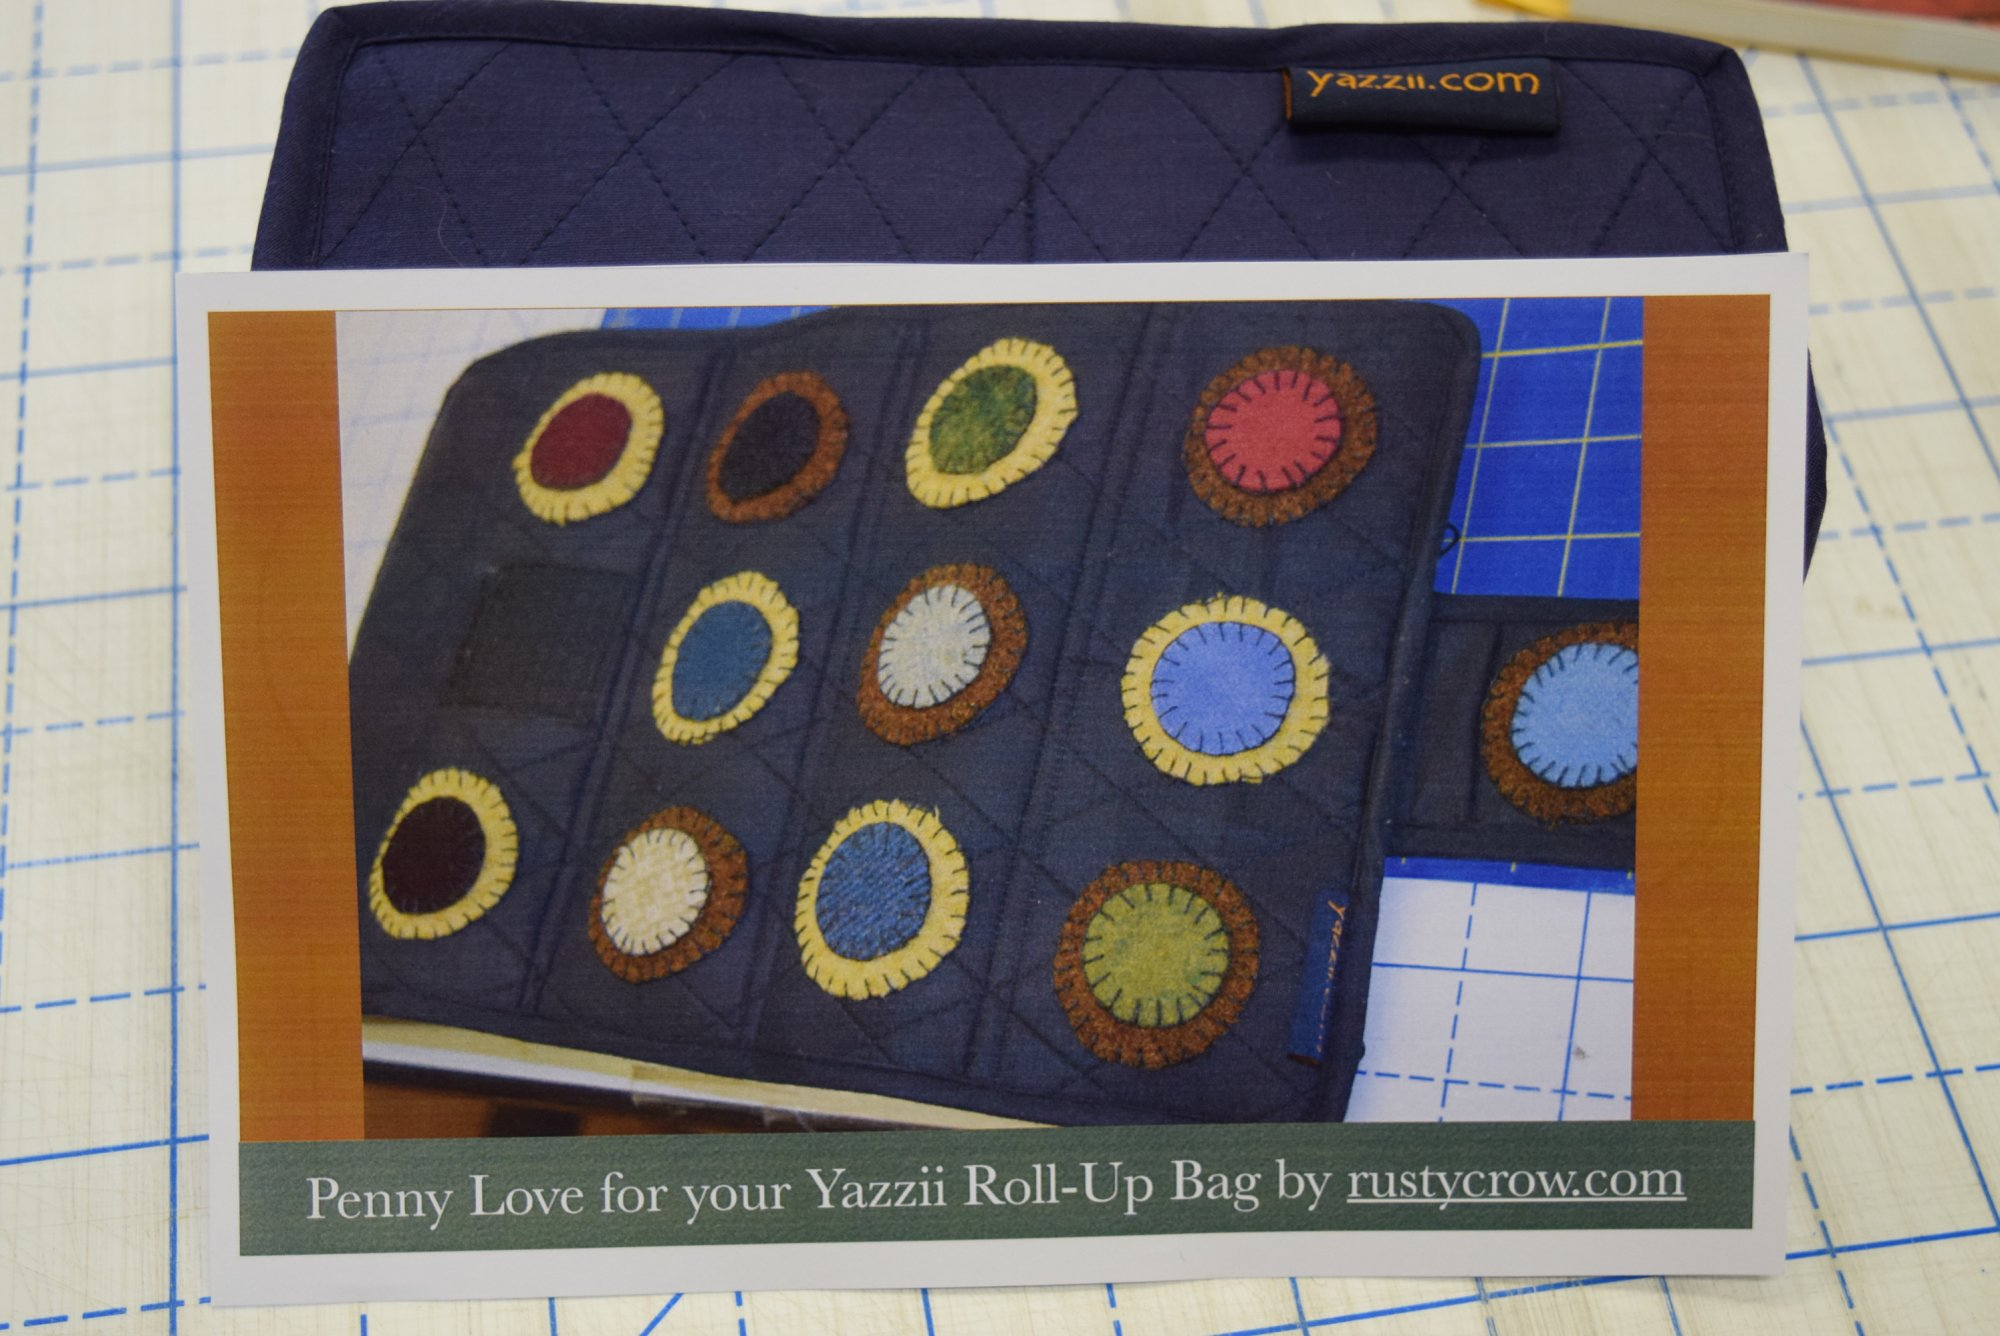 Penny Love Wool Kit for the Small Yazzii Roll-Up Bag